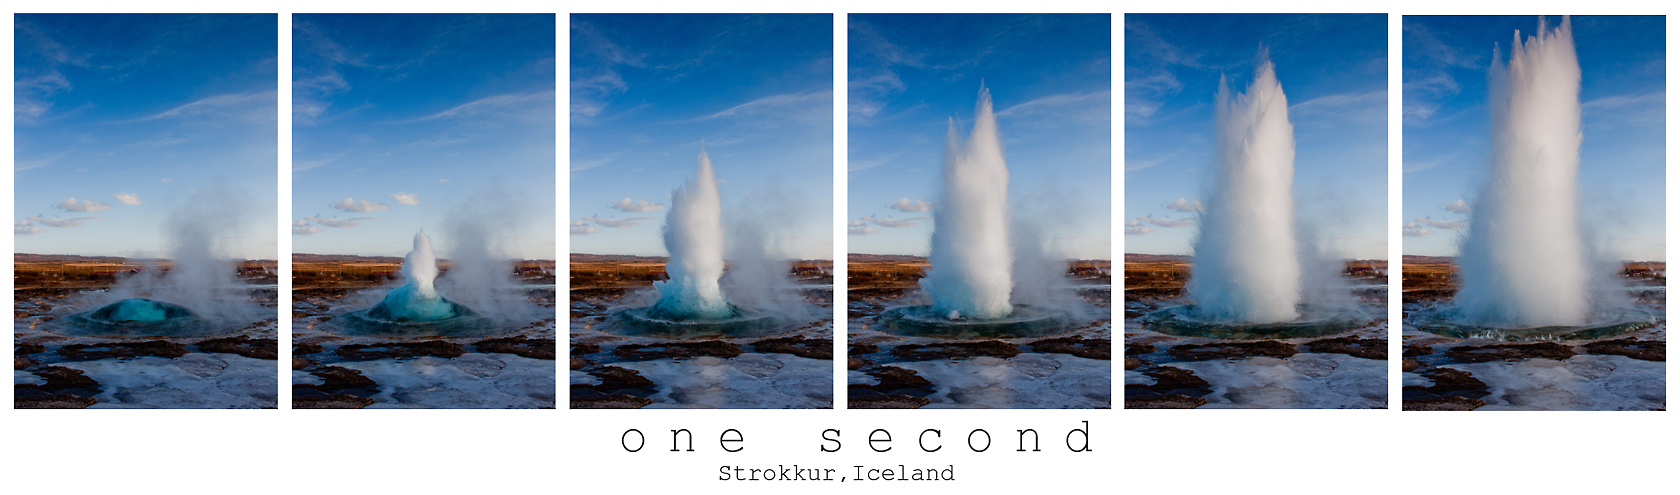 strokkur-geyser-sequence-by-raumkraehe